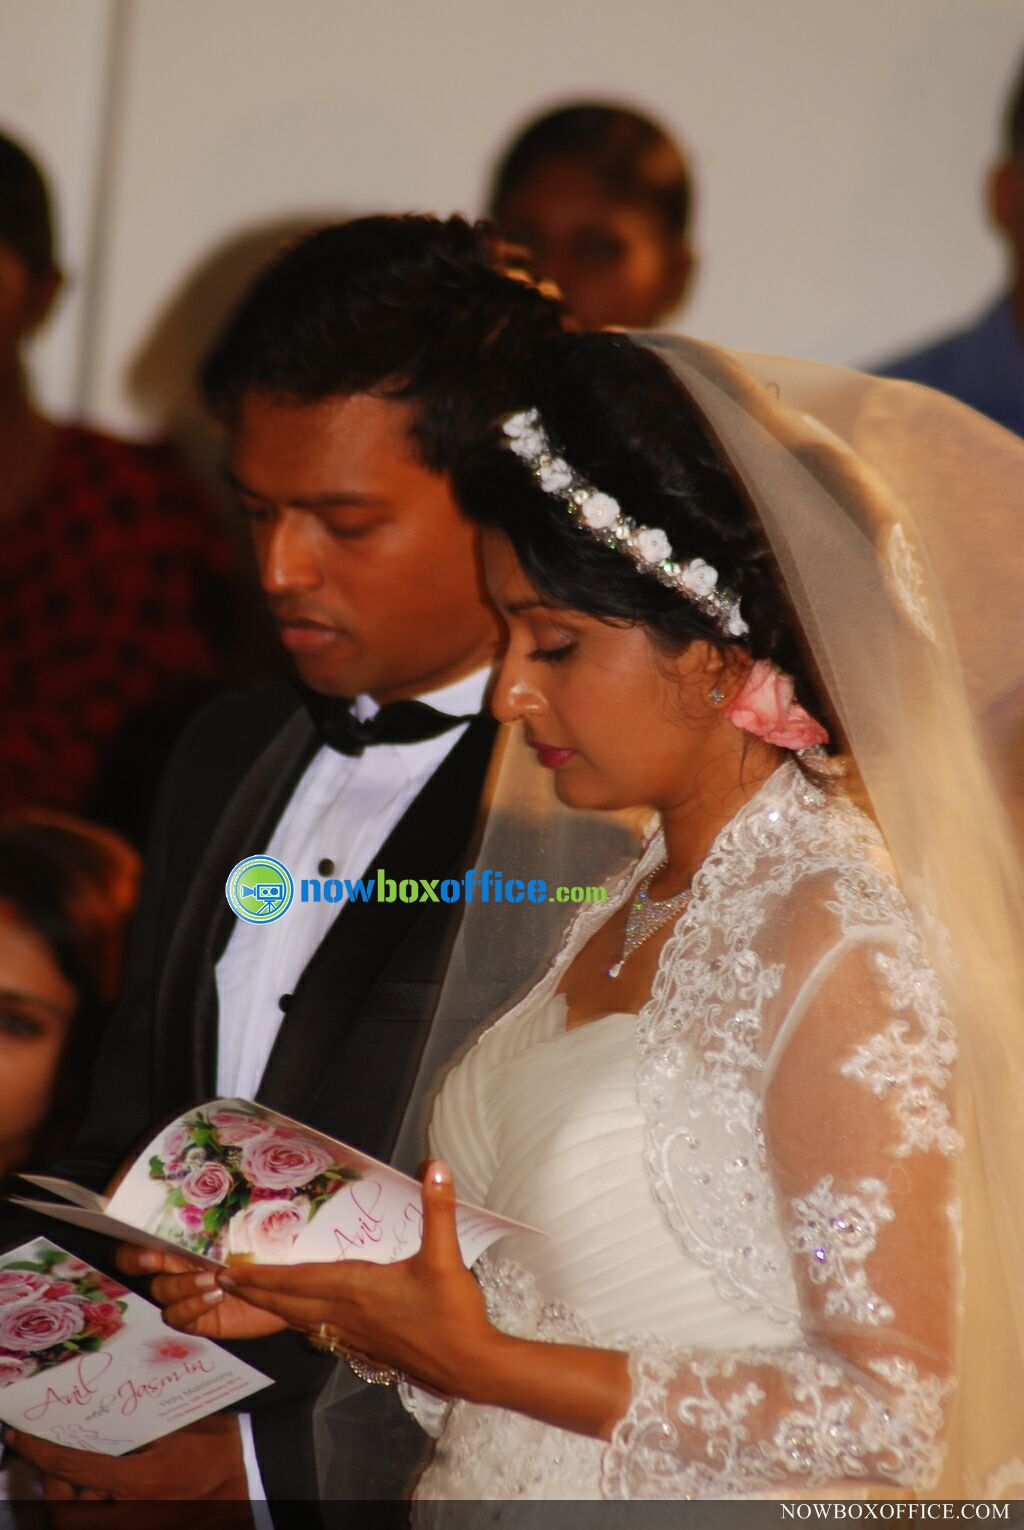 Meera Jasmine marriage photos » Meera jasmine wedding photos (41)